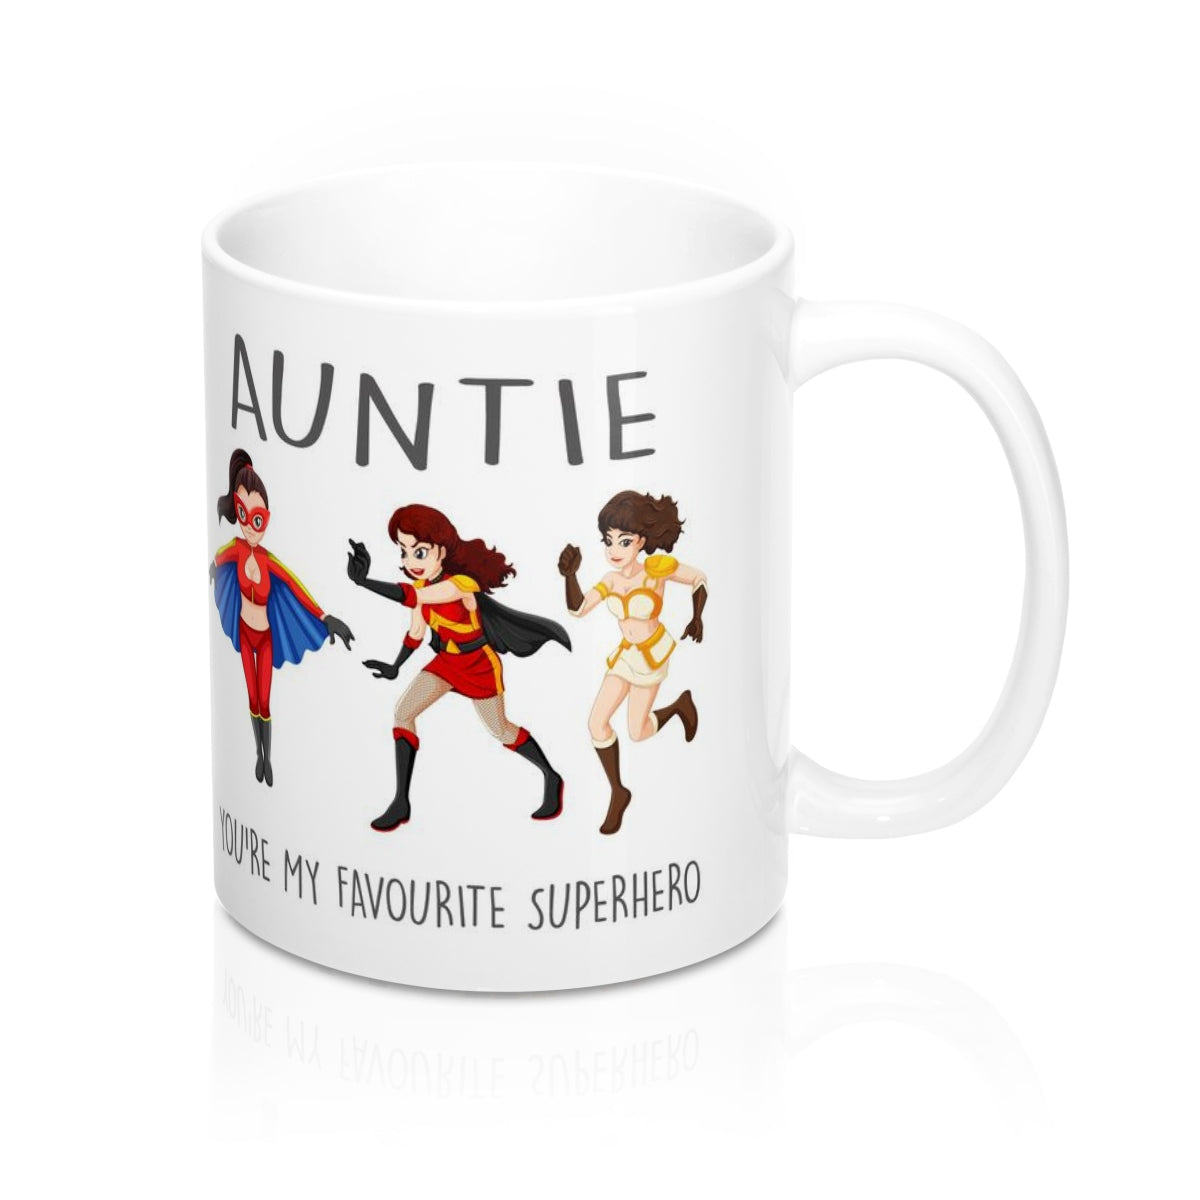 Auntie You're My Favourite Superhero Mug 11oz